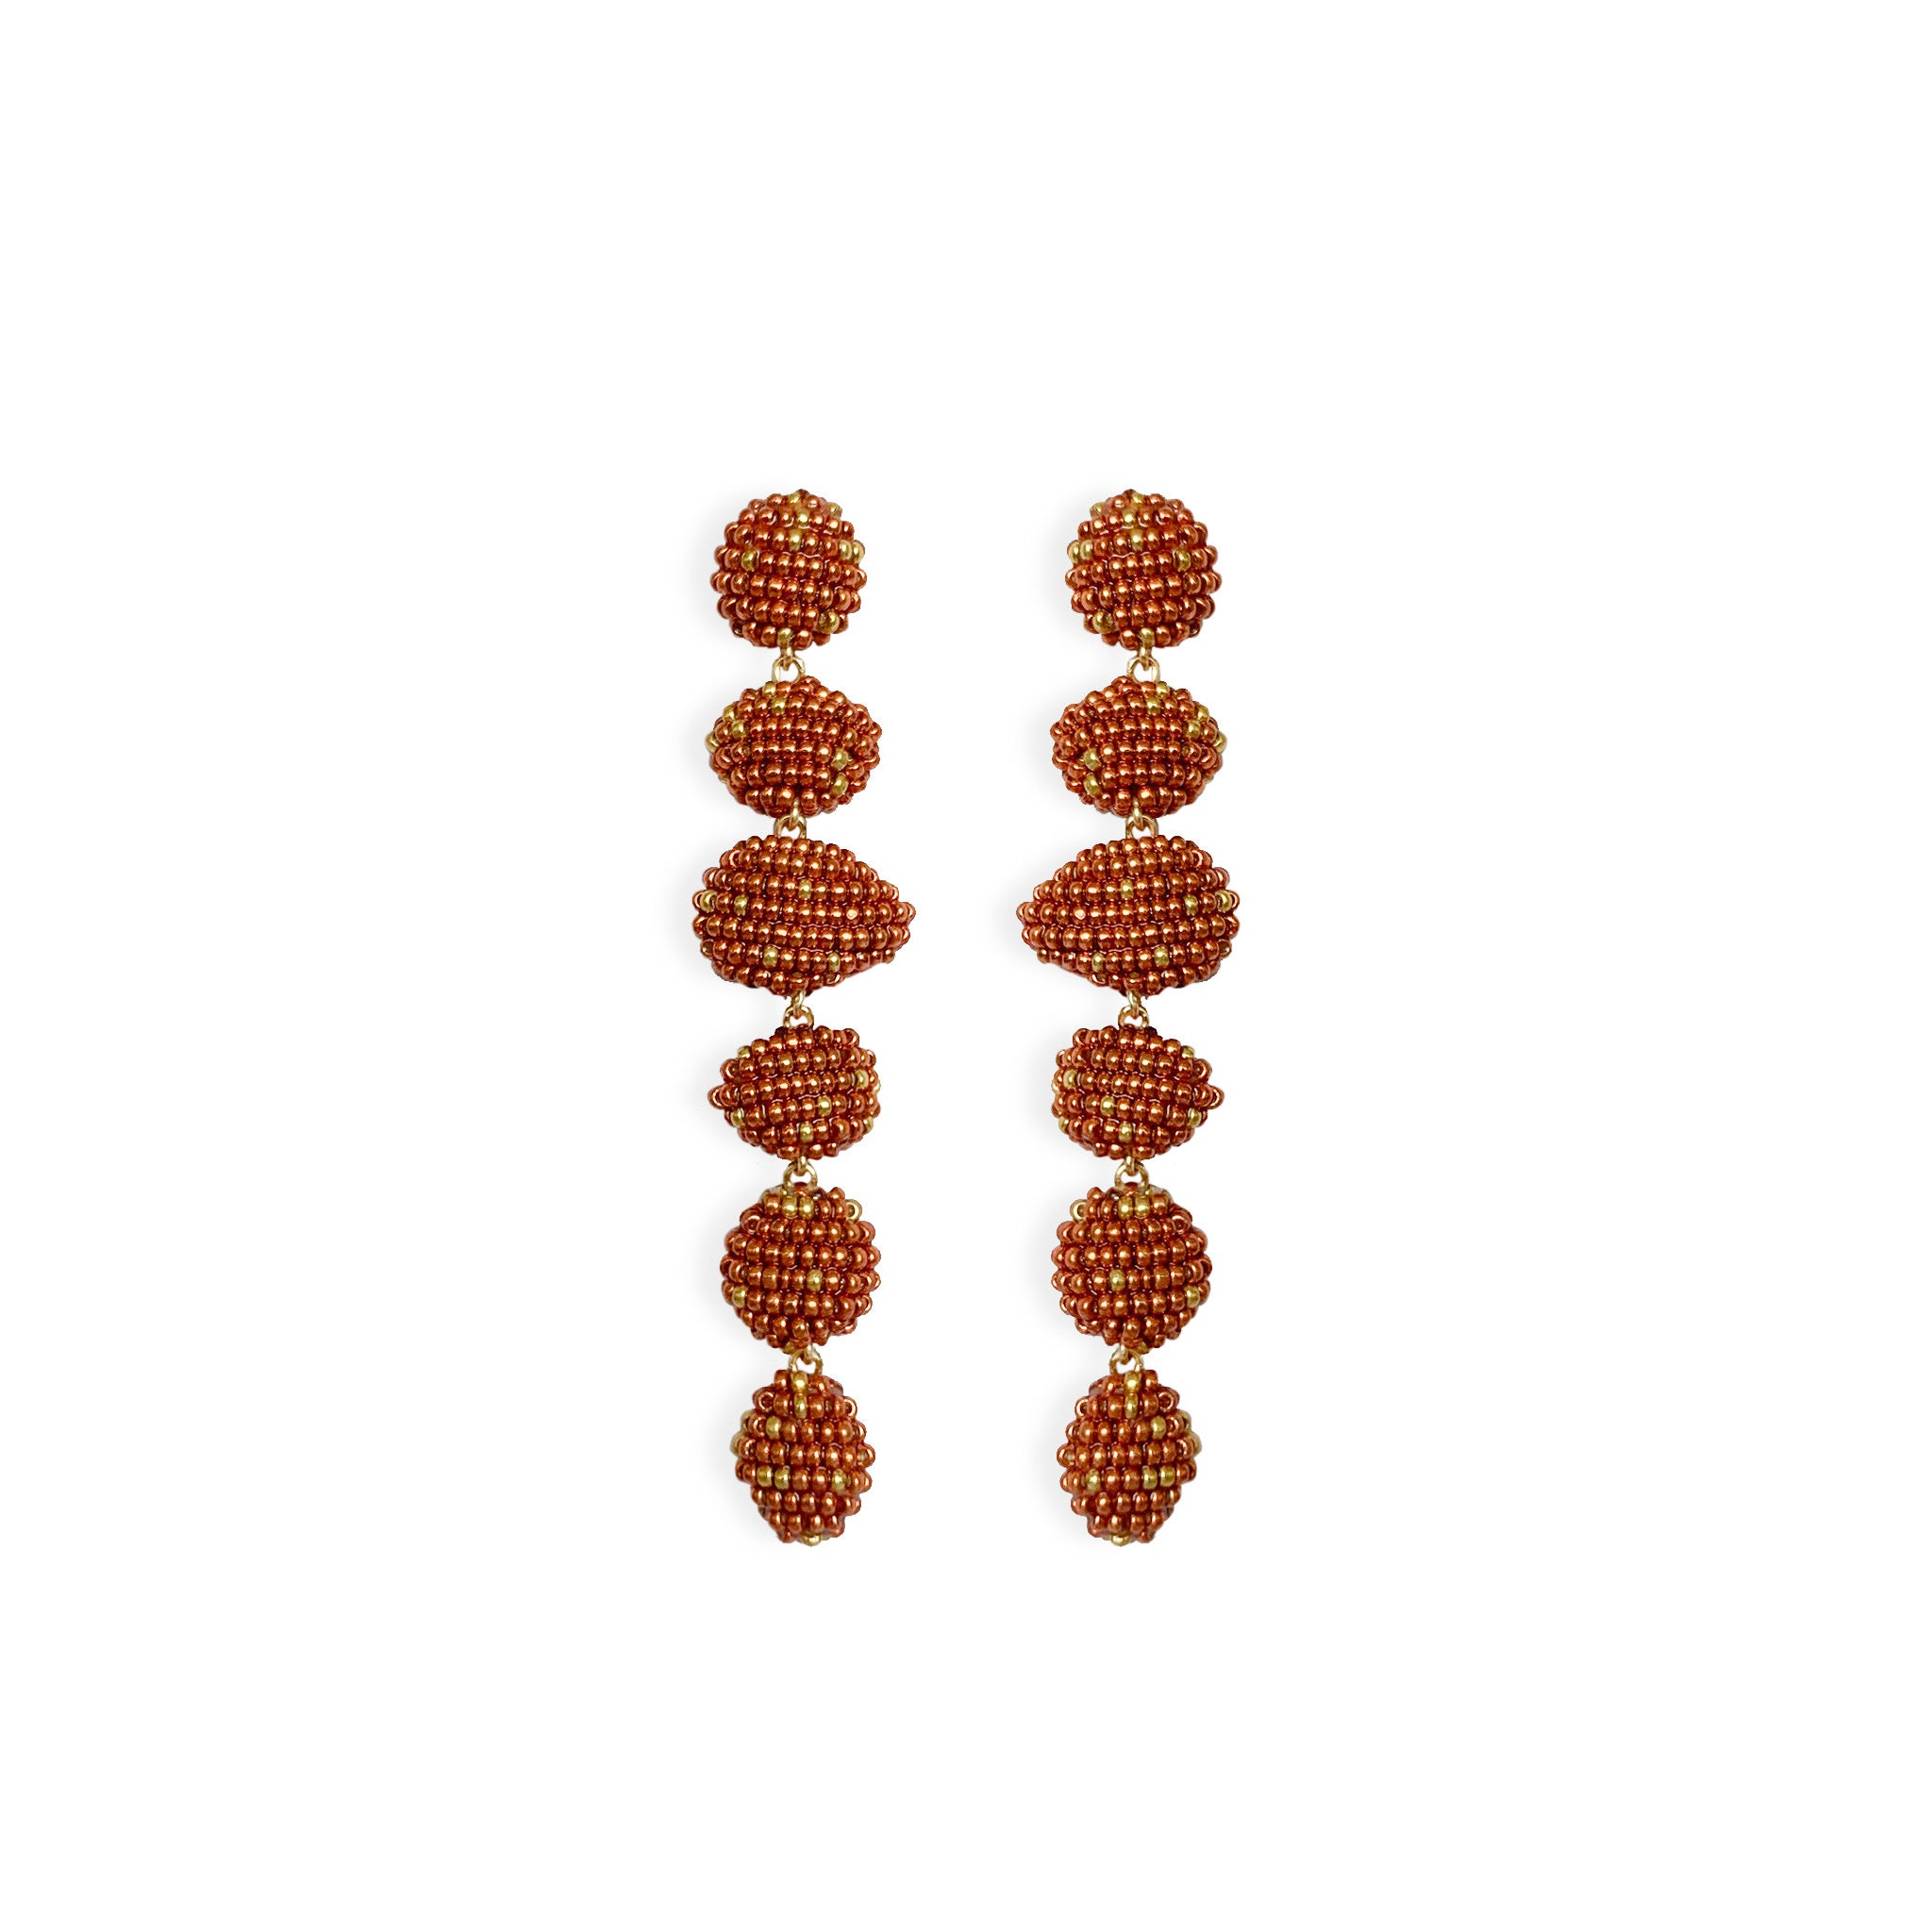 VIM earrings copper susana vega jewelry